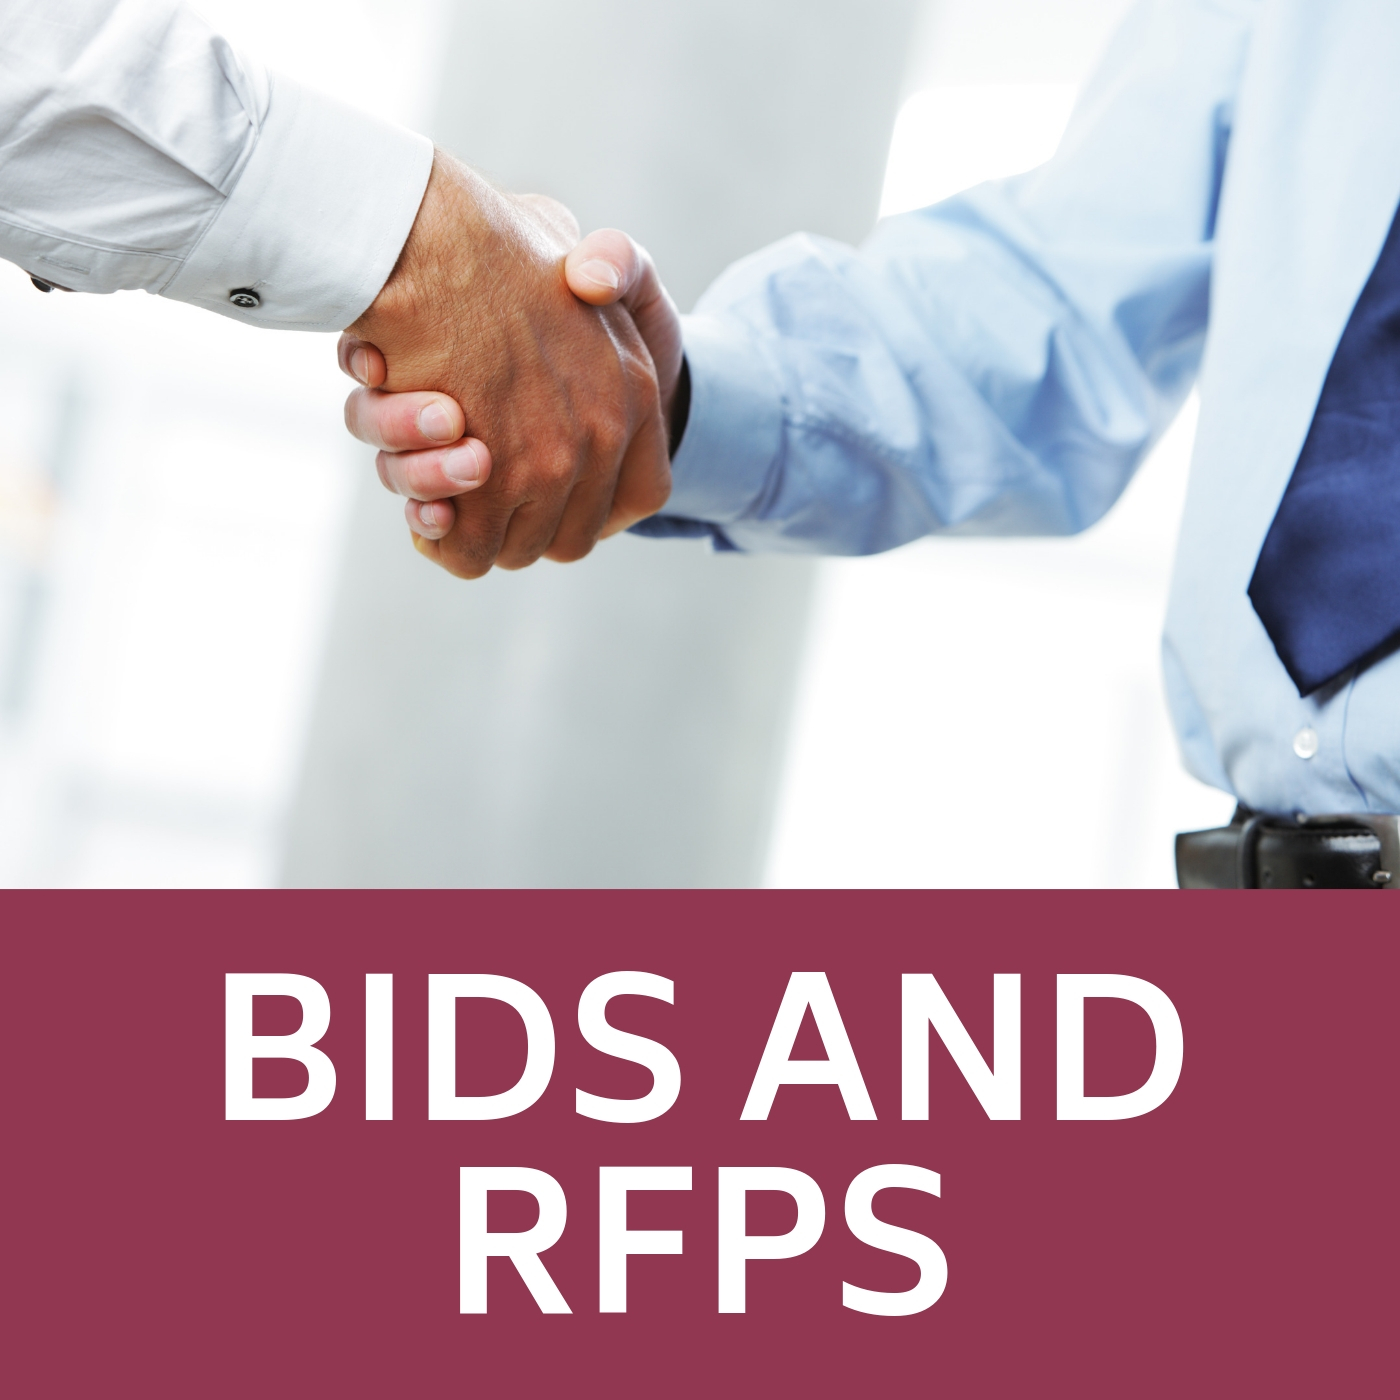 Image of handshake that links to the BIDS and RFPS web-page.